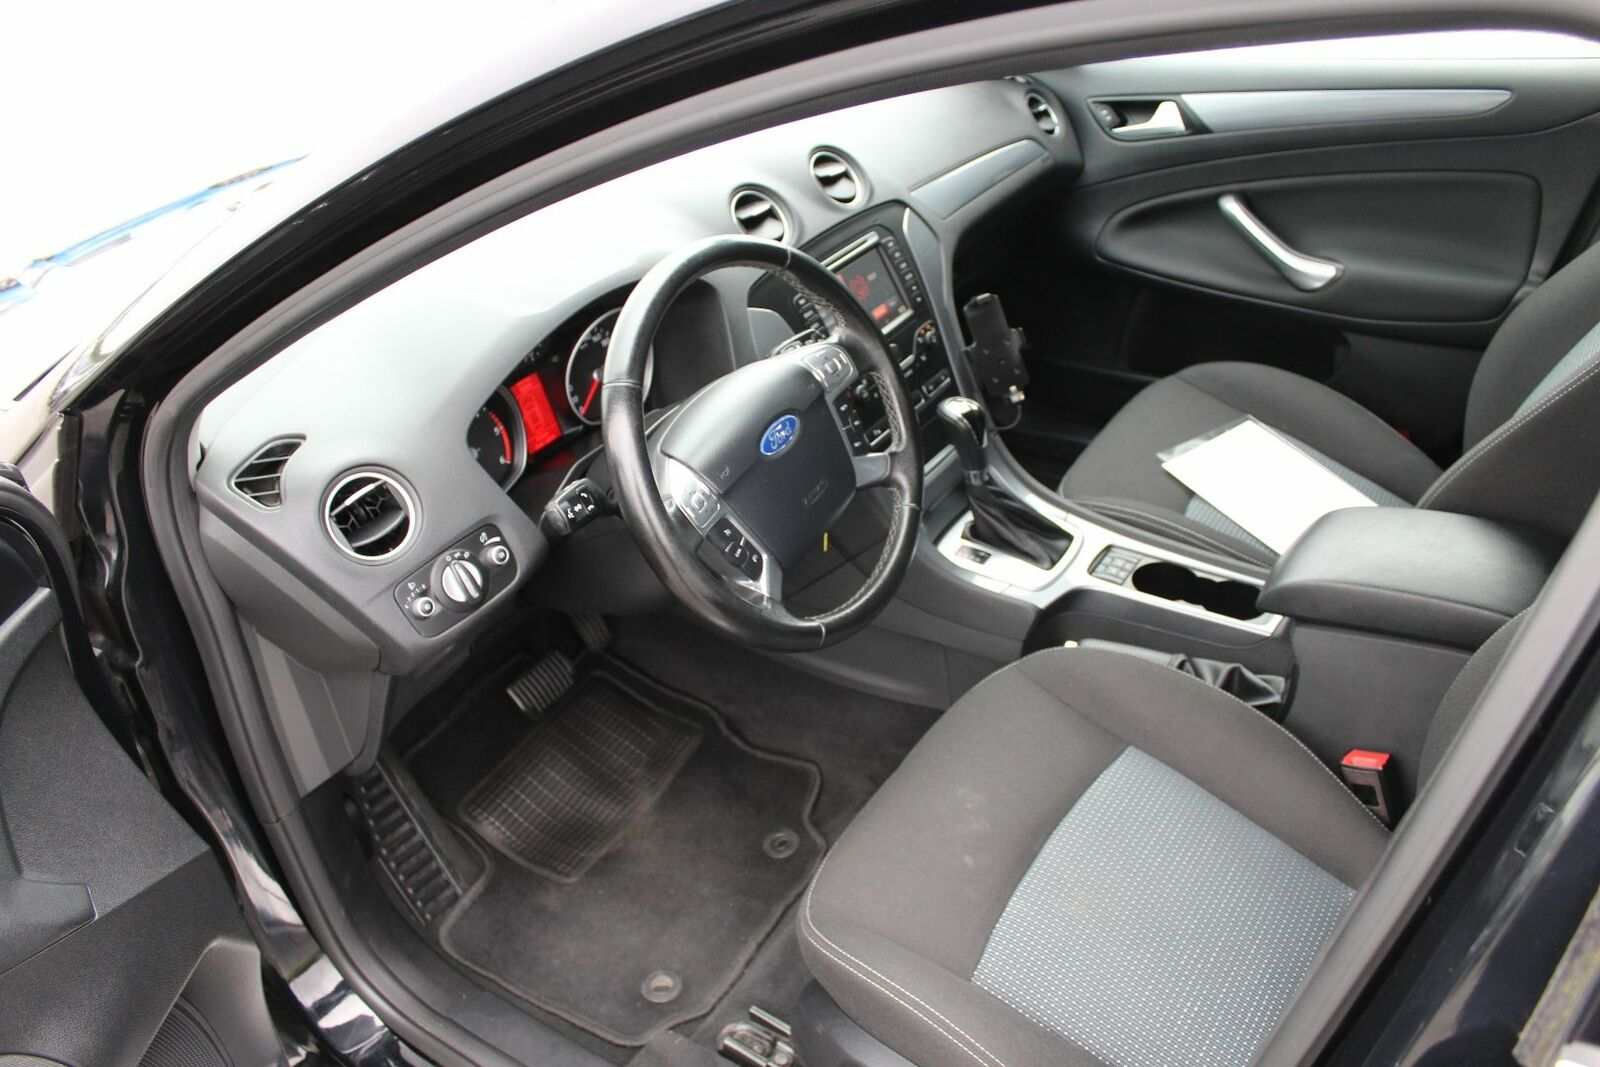 Ford Mondeo 2,0 TDCi 140 Collection stc. aut - billede 8